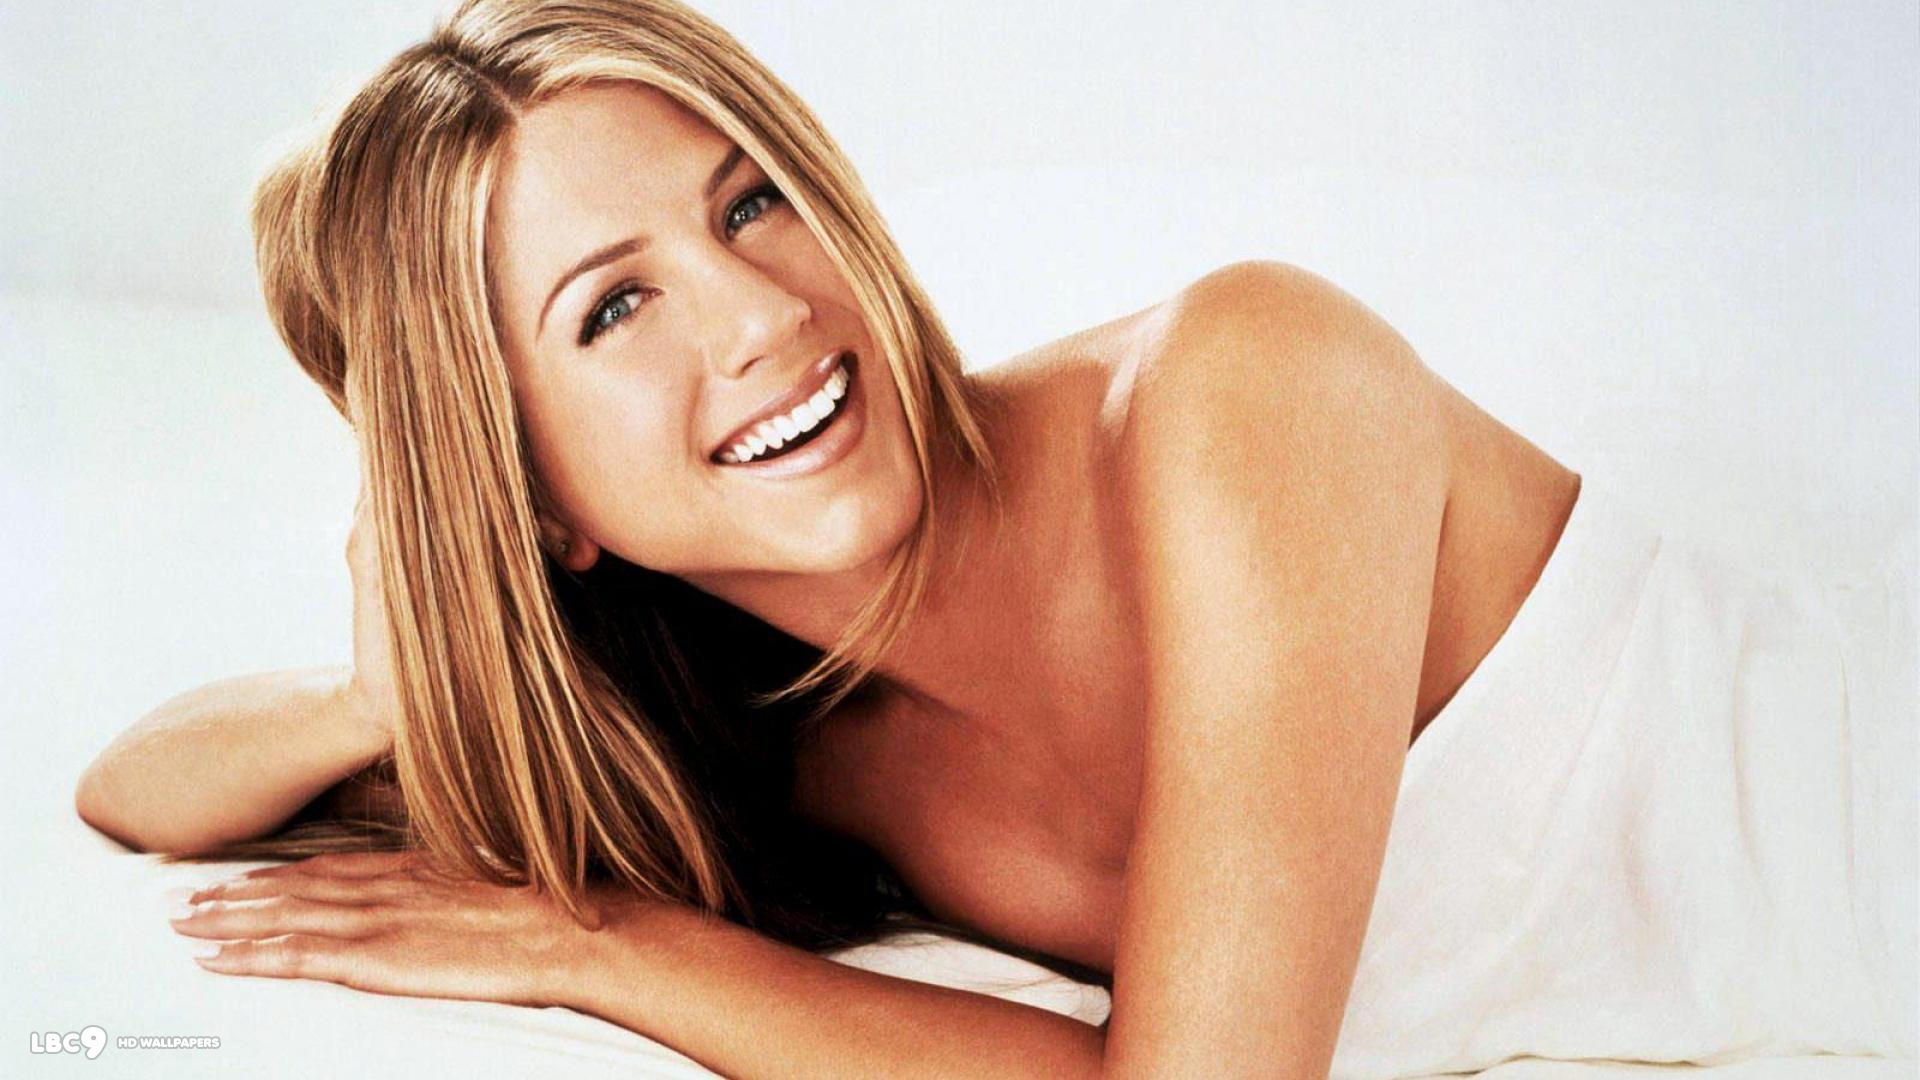 jennifer anniston sexy desktop